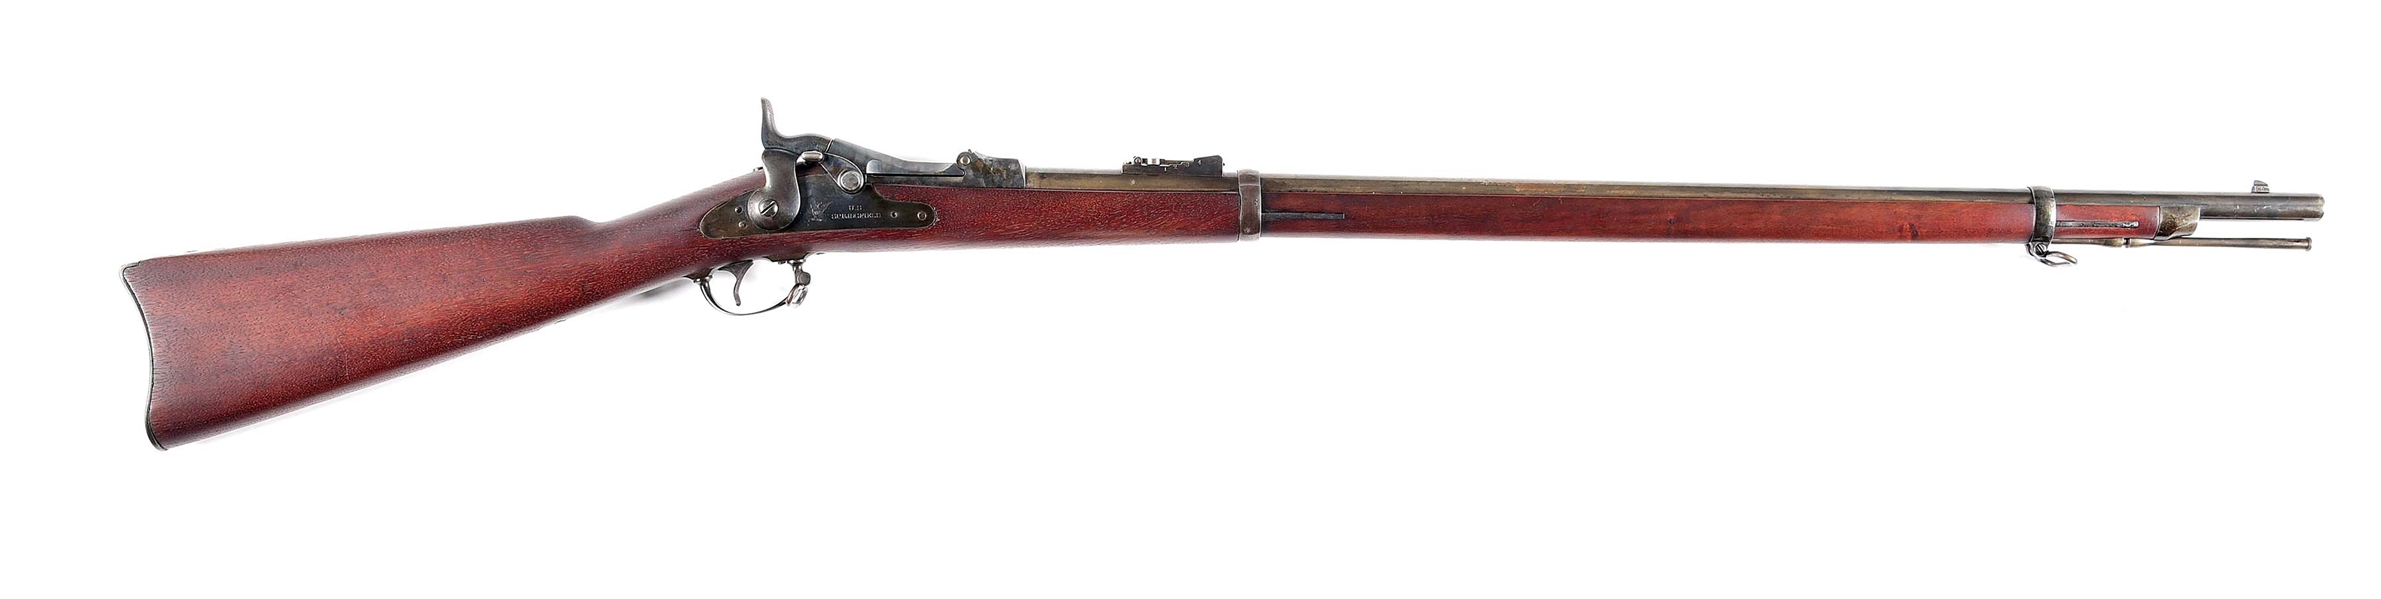 (A) SPRINGFIELD MODEL 1873 TRAPDOOR SINGLE SHOT RIFLE.